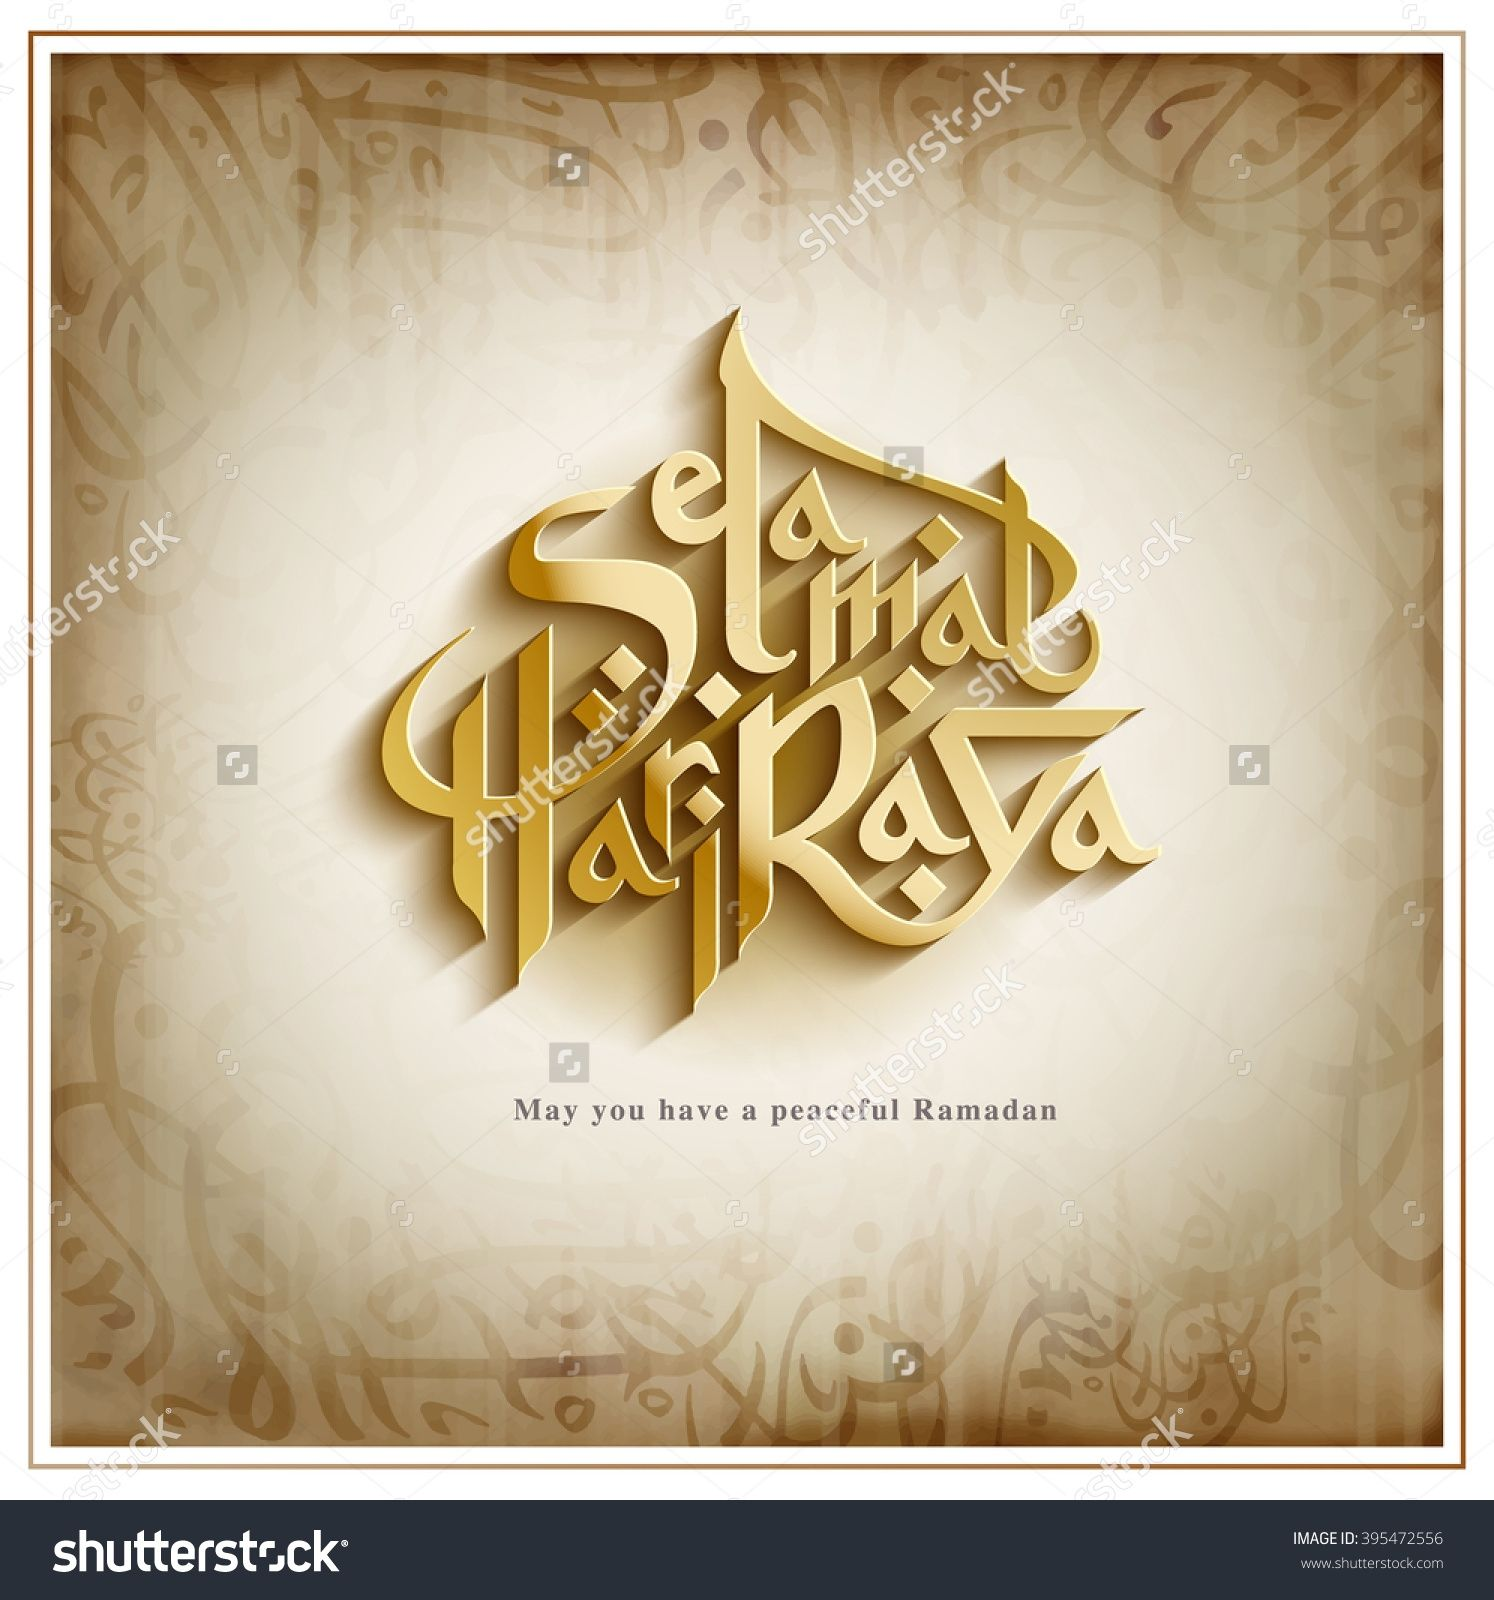 background design raya - new background design raya download